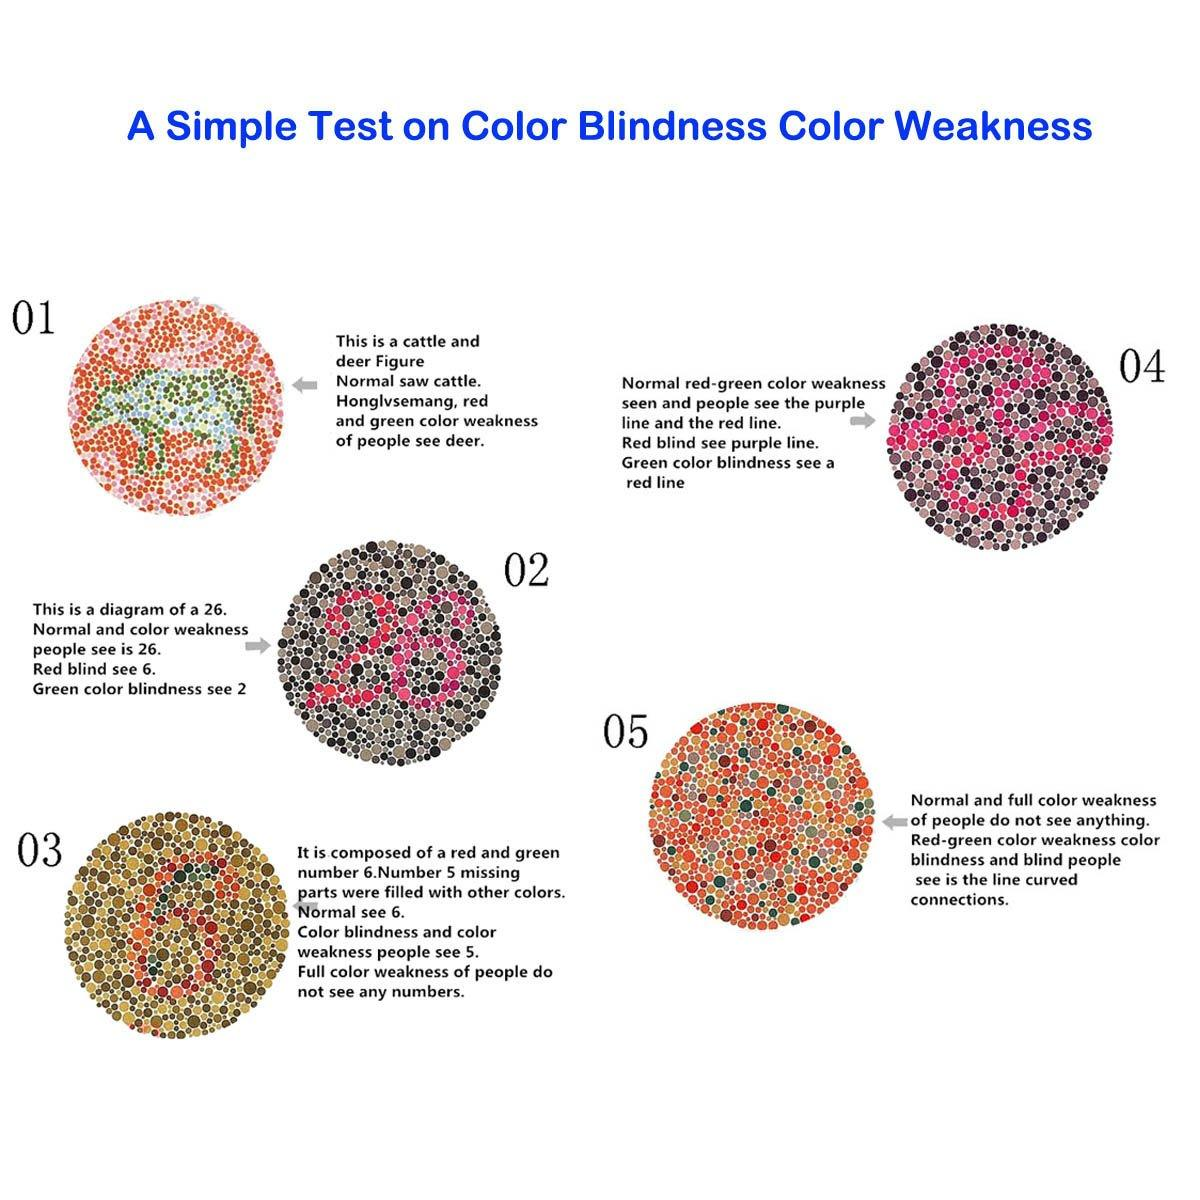 colorblind specialty blind some enhance eyeglasses story to jc blinds optics the allow photo us red blindness glasses color people said by price perceive ht manufacturer how vino